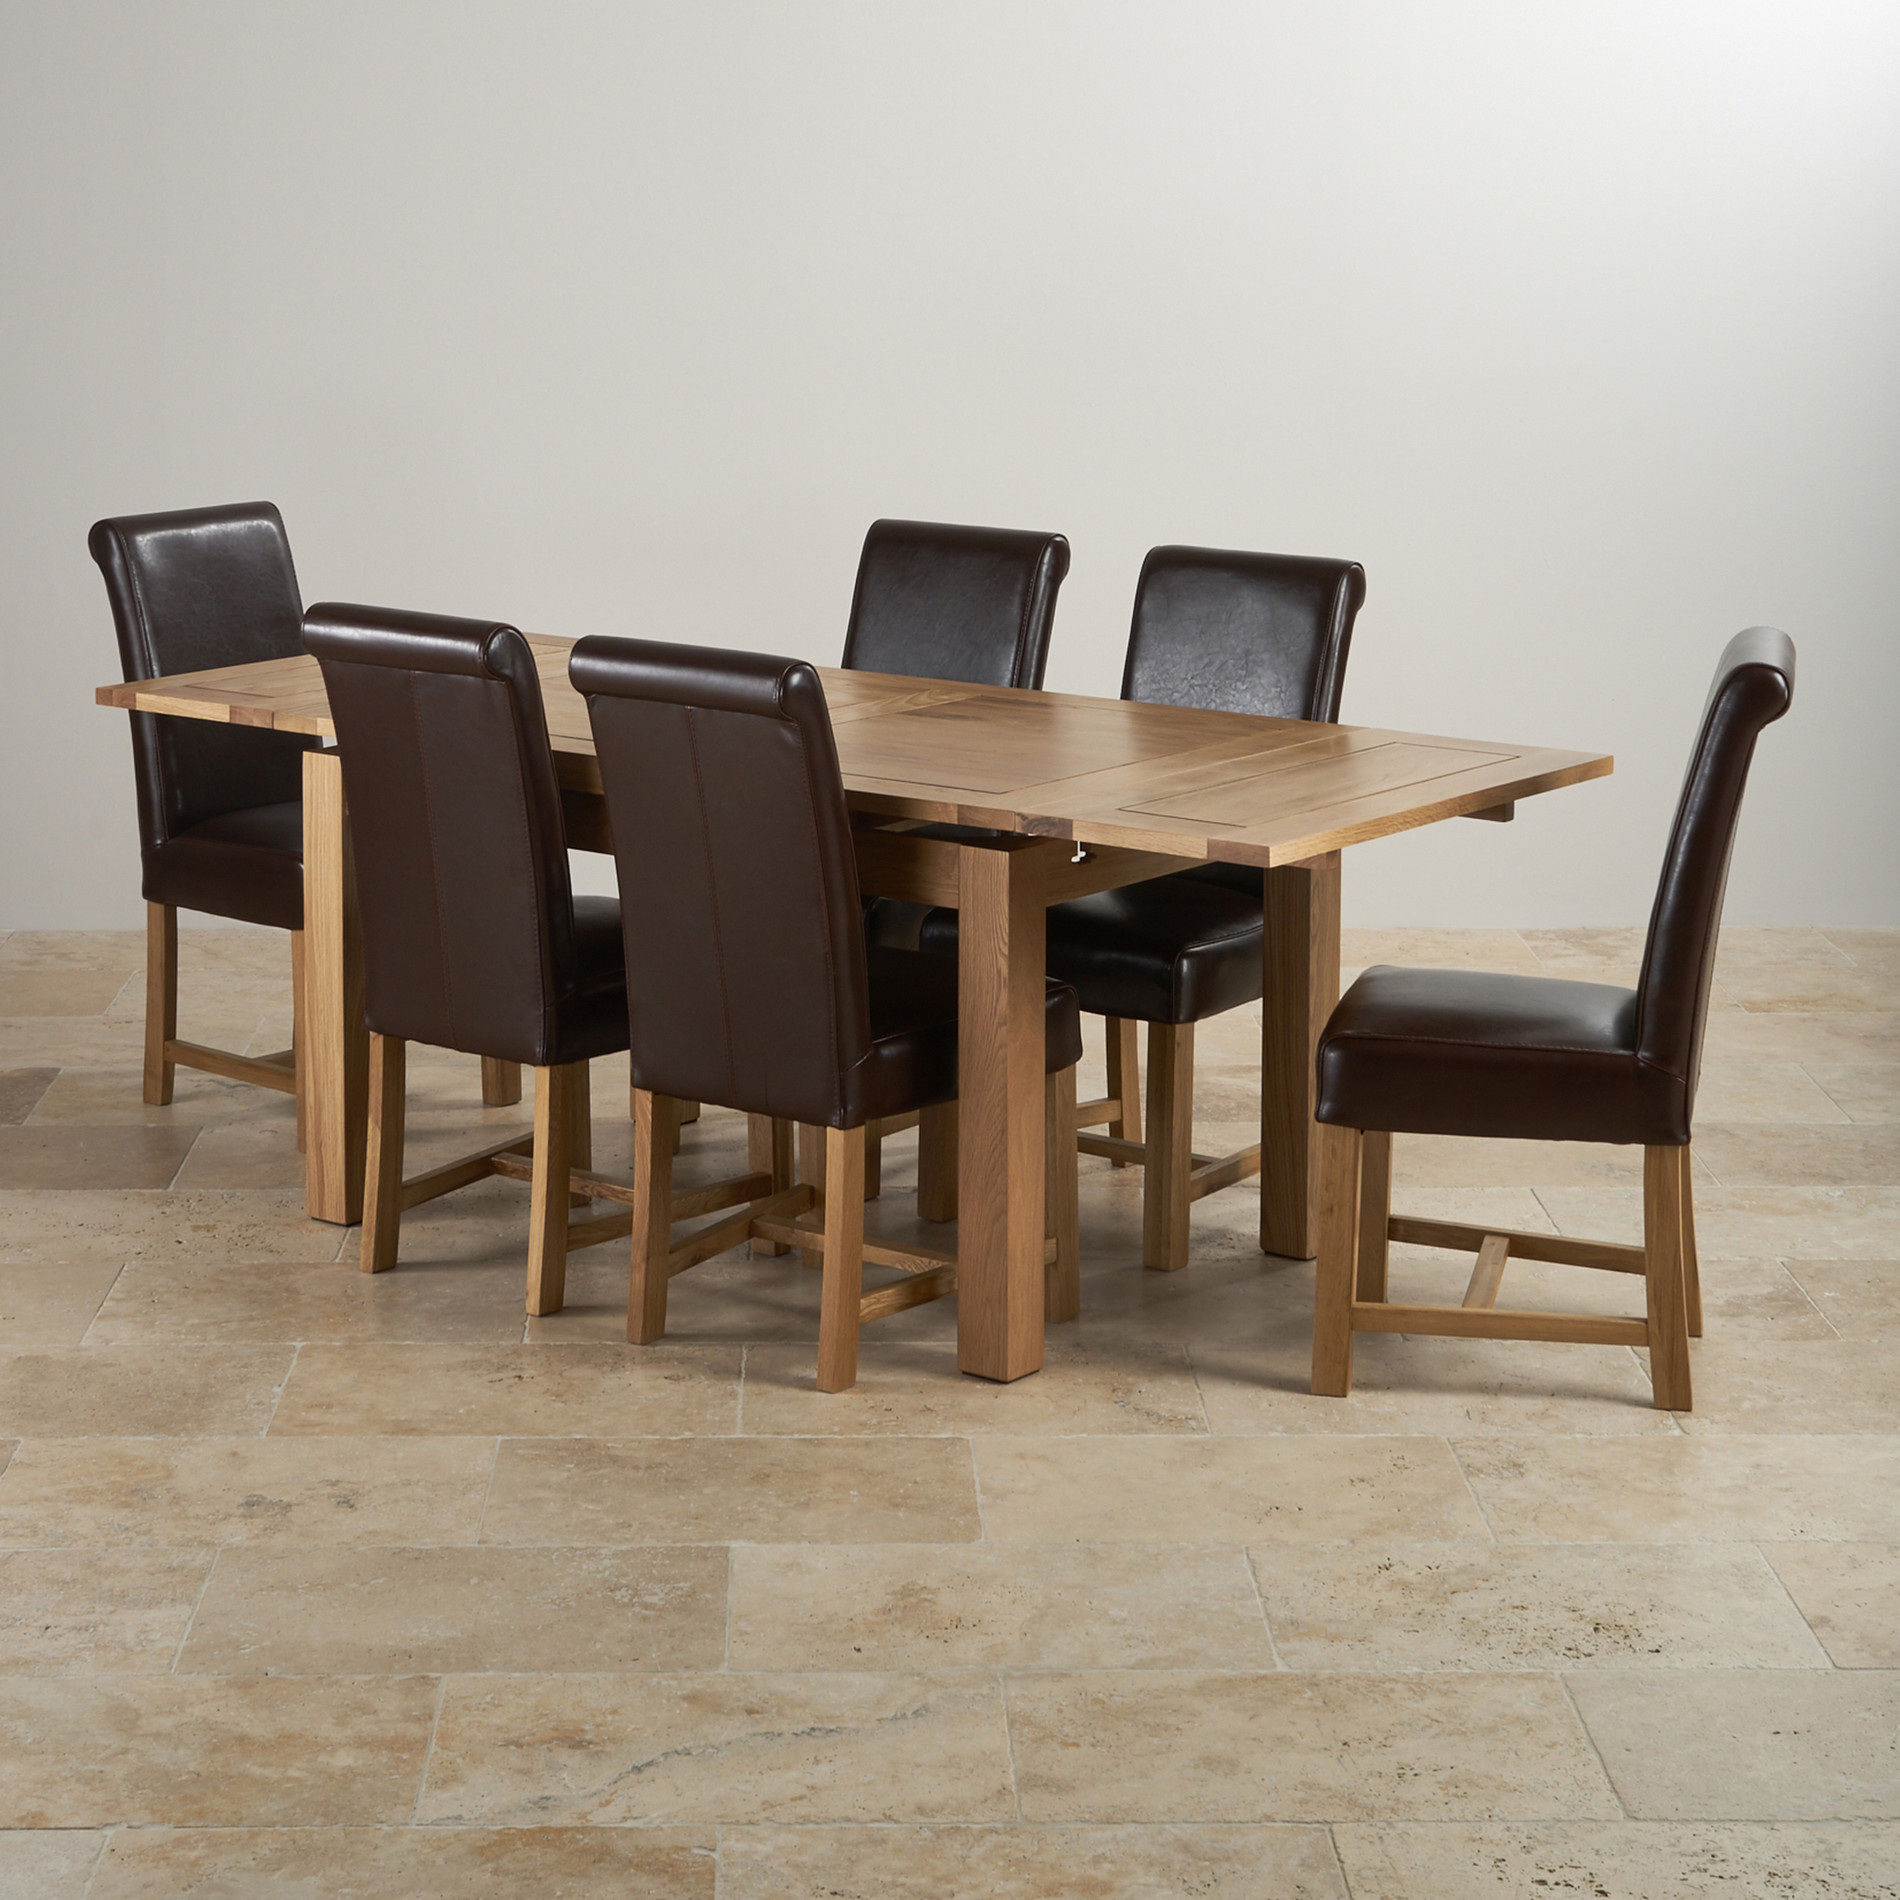 9c7988132d59 dorset-natural-solid-oak-dining-set--4ft-7-extending-table-with-6-braced- scroll-back-brown-leather-chairs-573349b4adef4.jpg